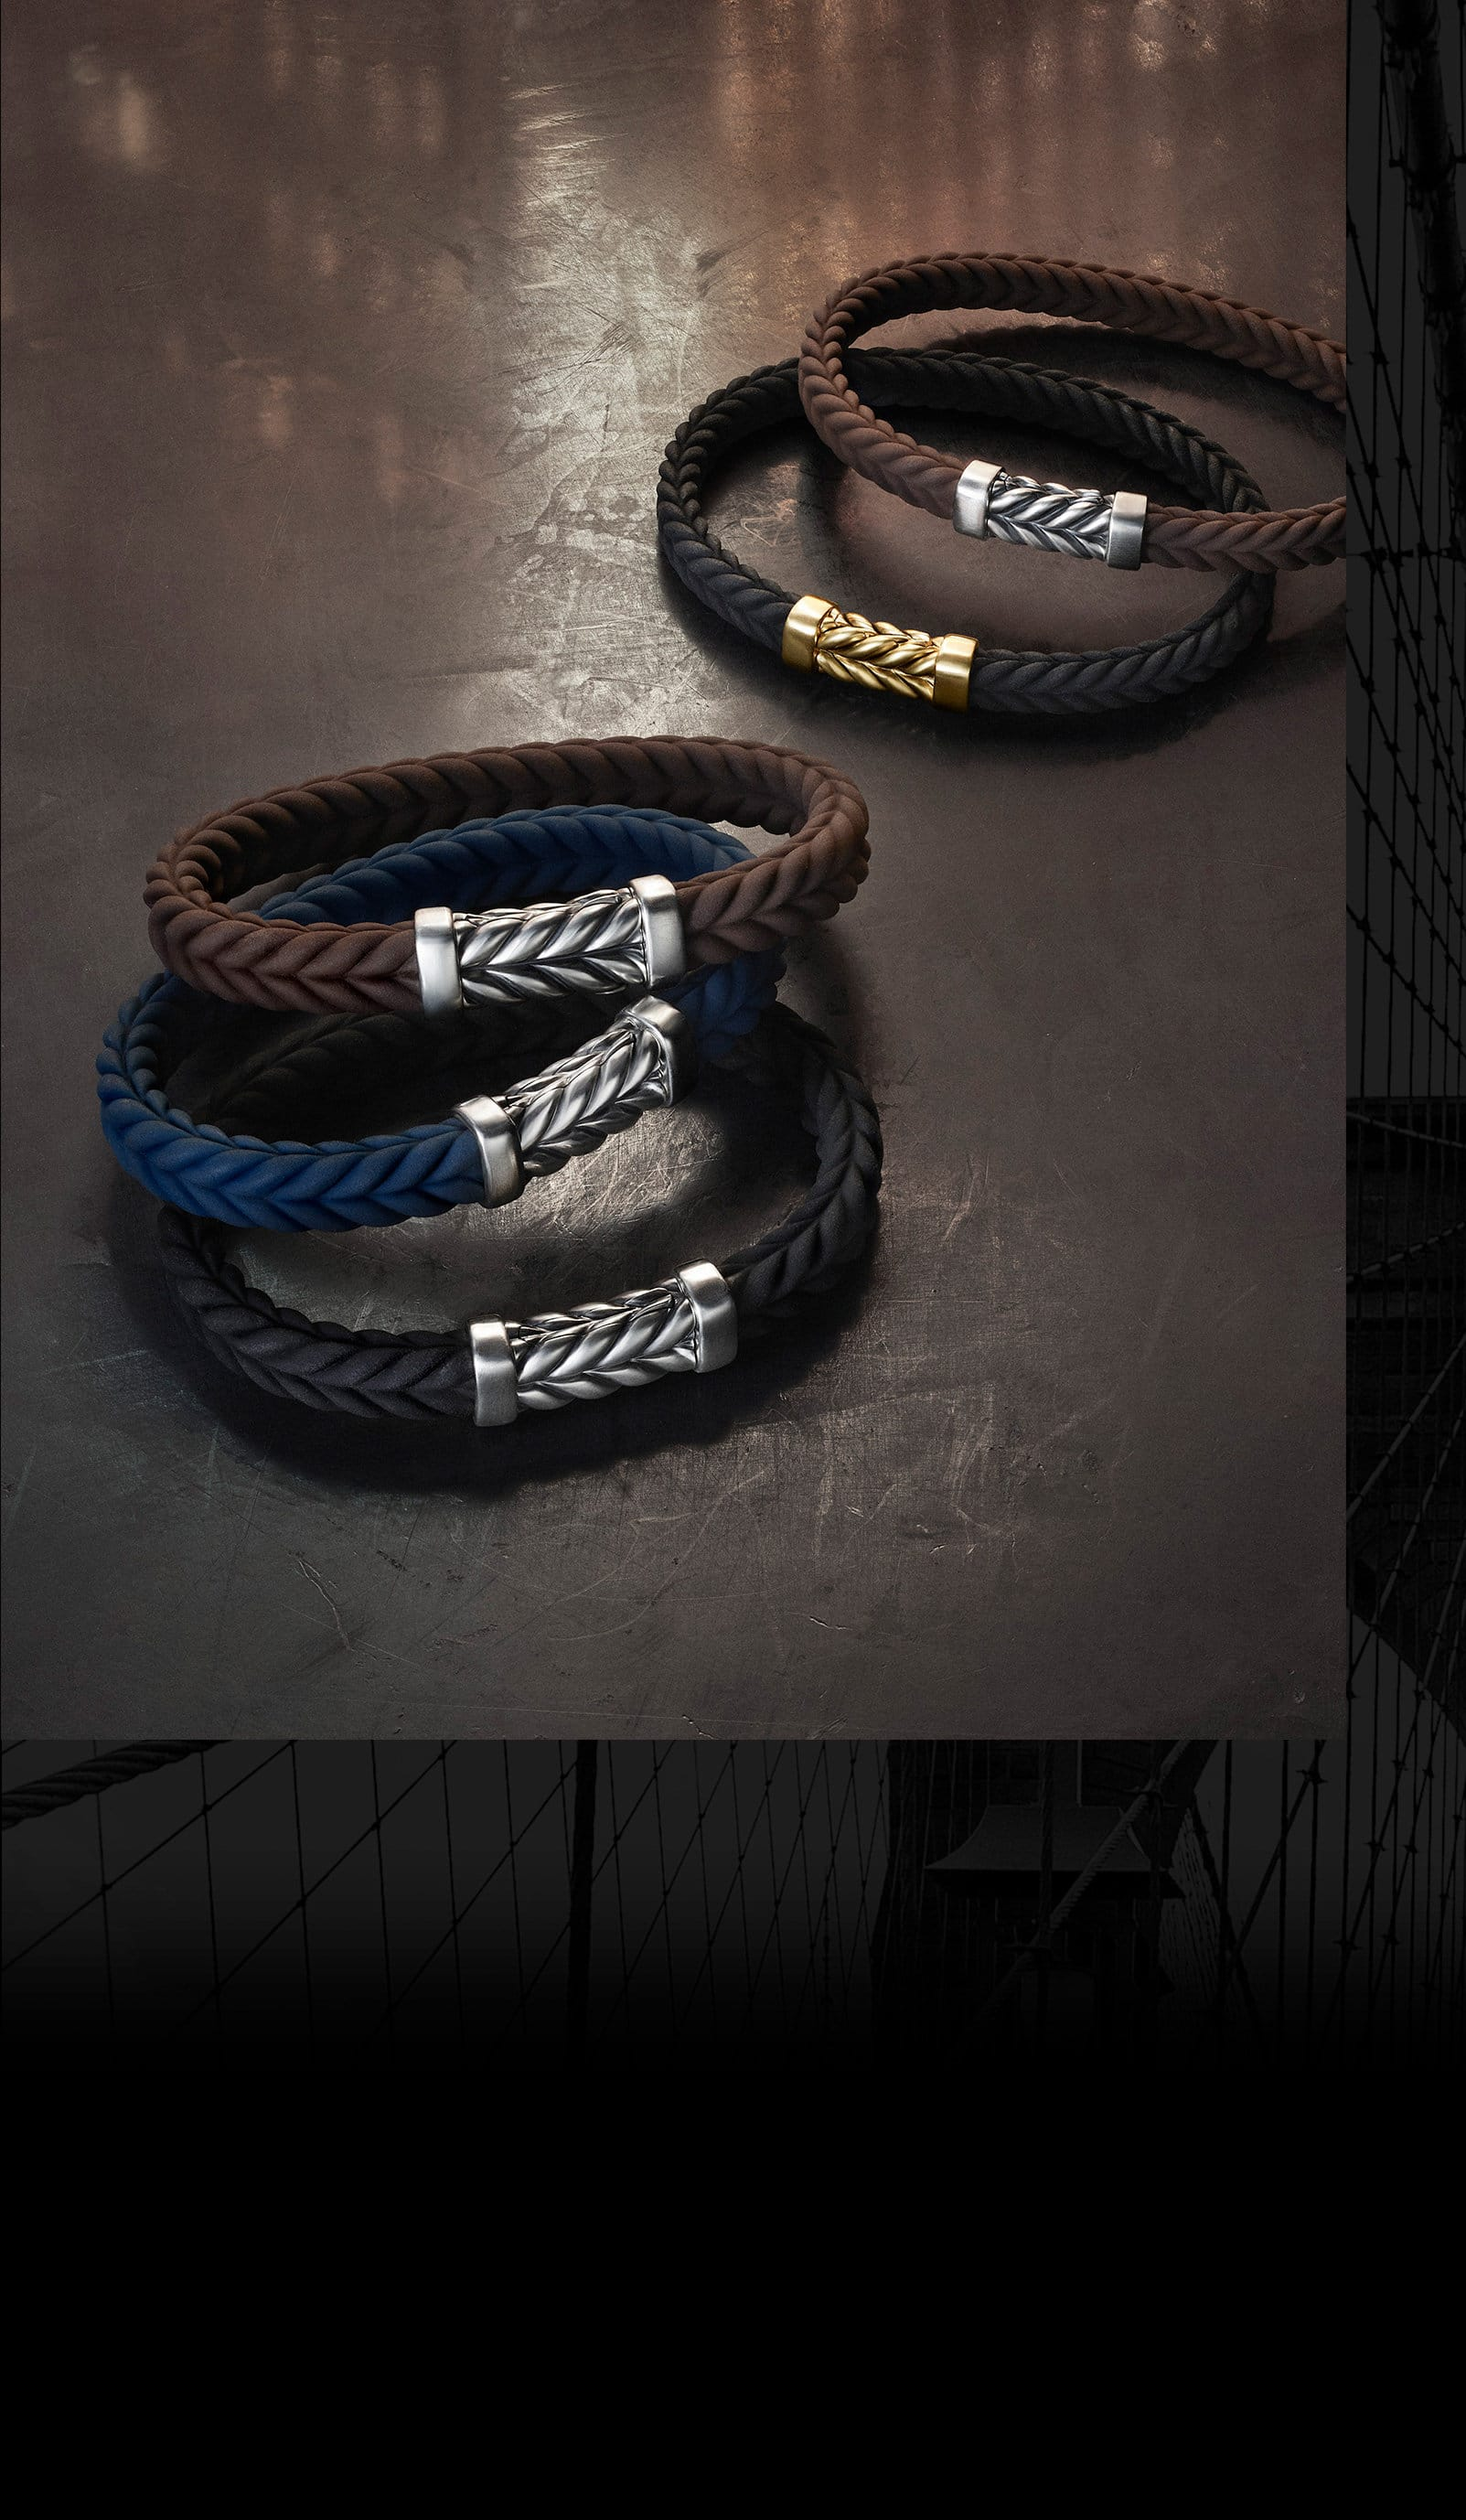 Five David Yurman men's Chevron bracelets. The jewelry is crafted from brown, blue or black rubber with sterling silver or 18K yellow gold clasps with Chevron detailing.